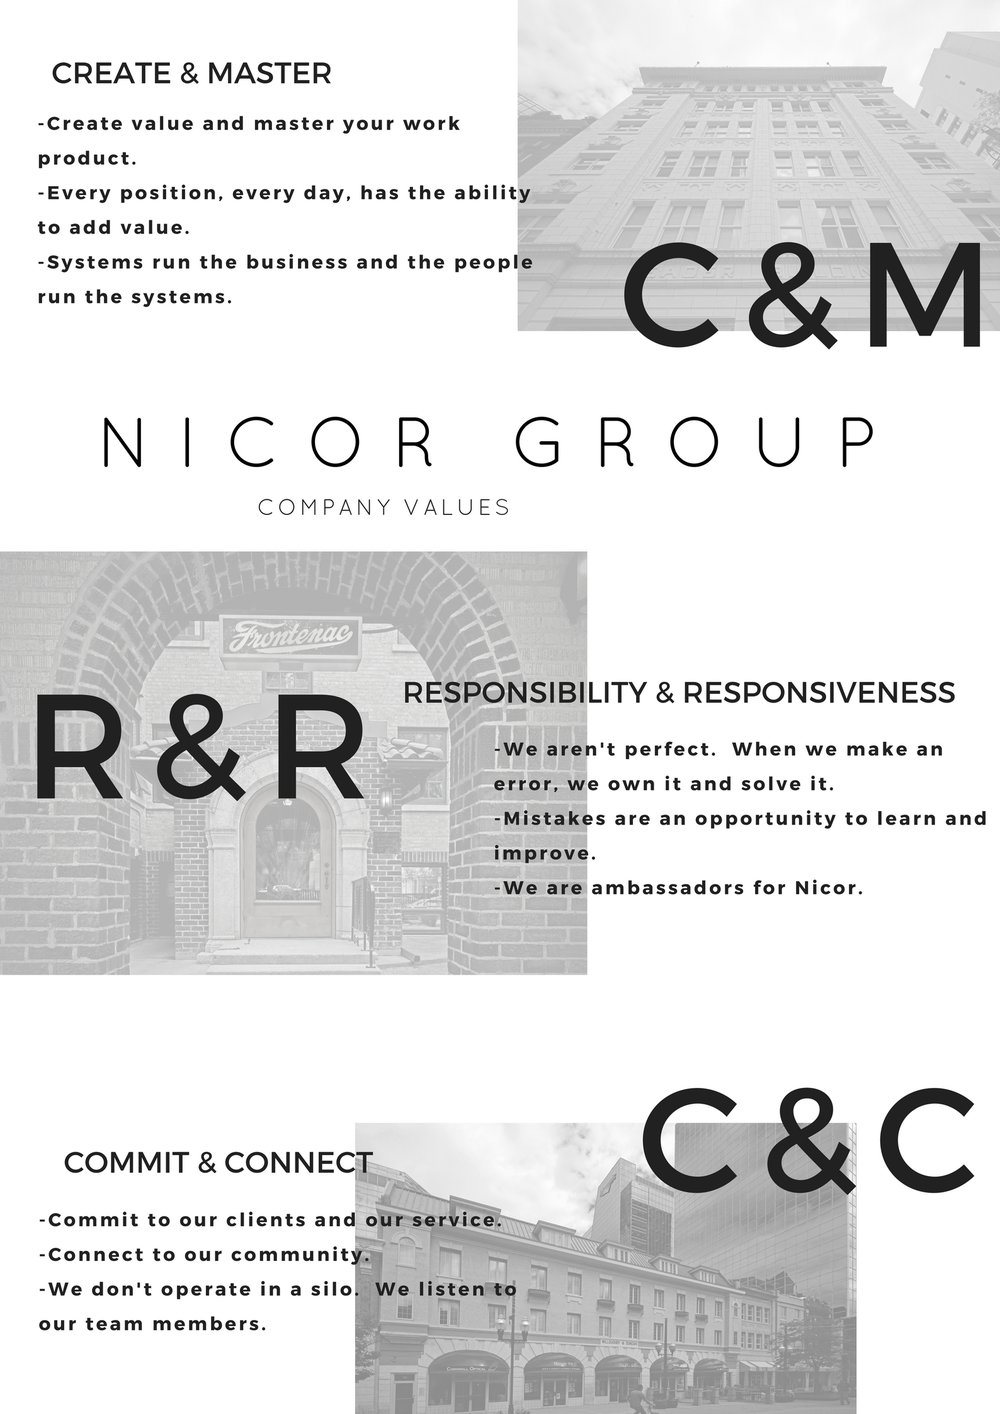 Nicor Values - Sept 28, 2017.jpg